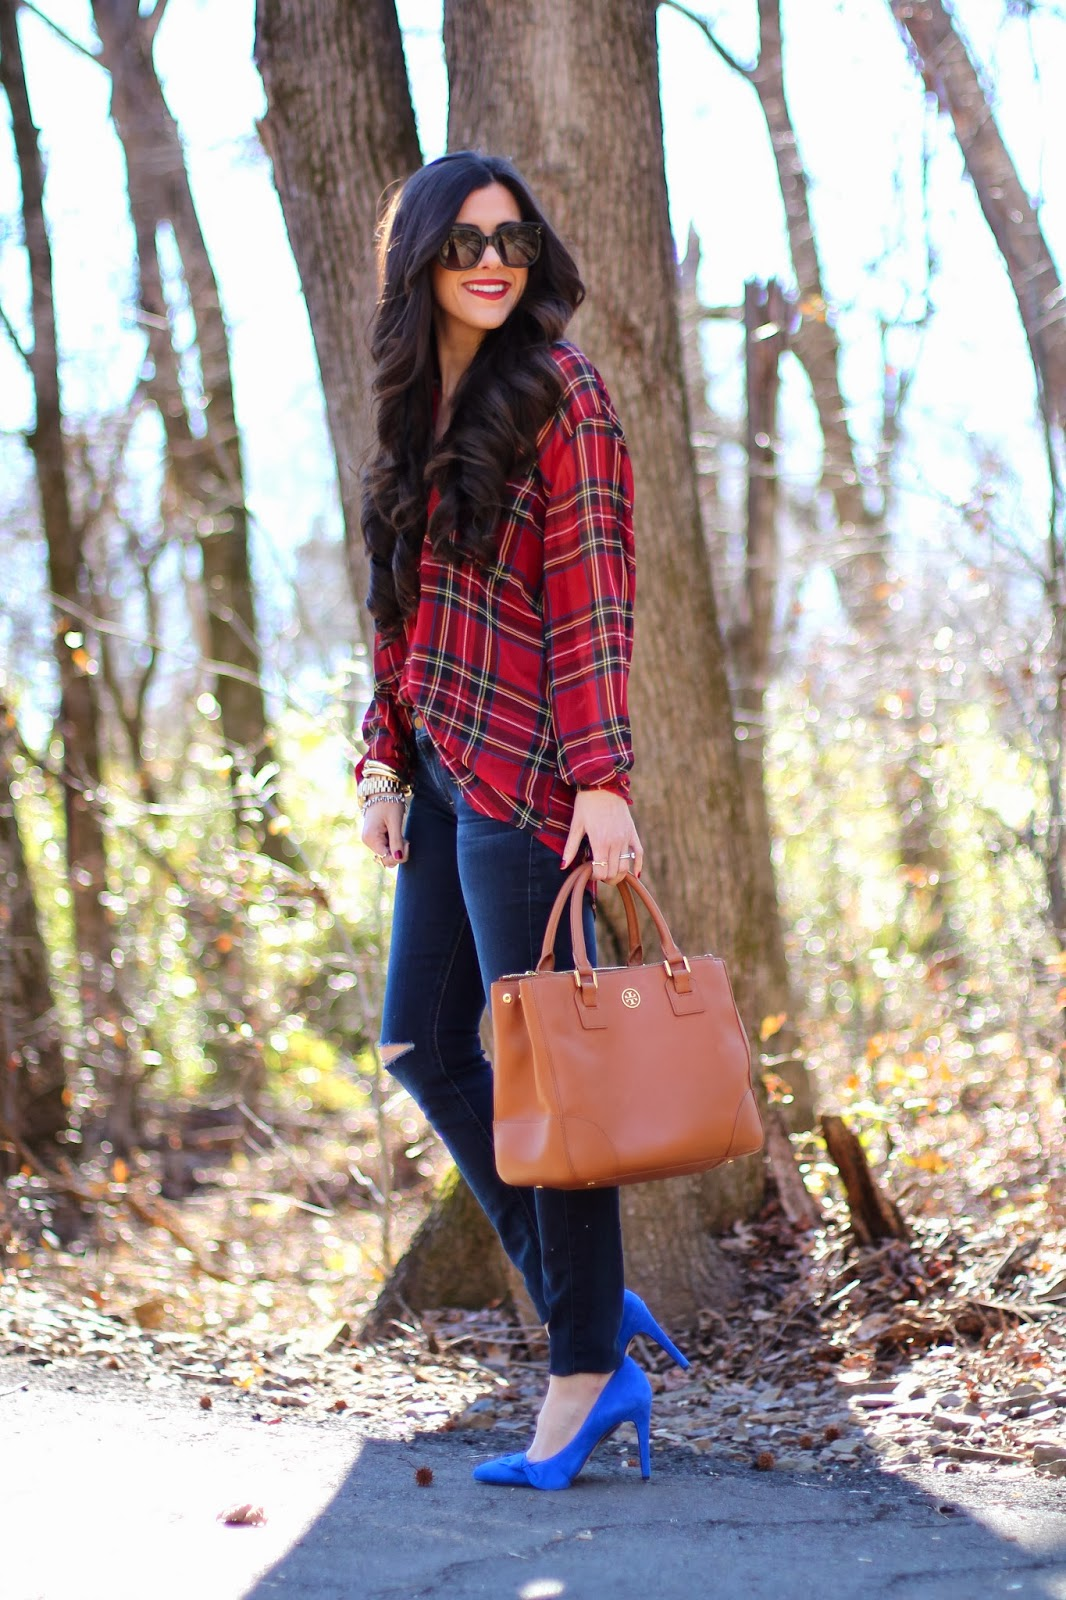 The Sweetest Thing, www.thesweetestthingblog.com, Emily Gemma, Celine Sunglasses, Celine Audrey, New Audrey Sunglasses, Sole Society, oversized tunic, tartan tunic, plaid shirt, tory burch